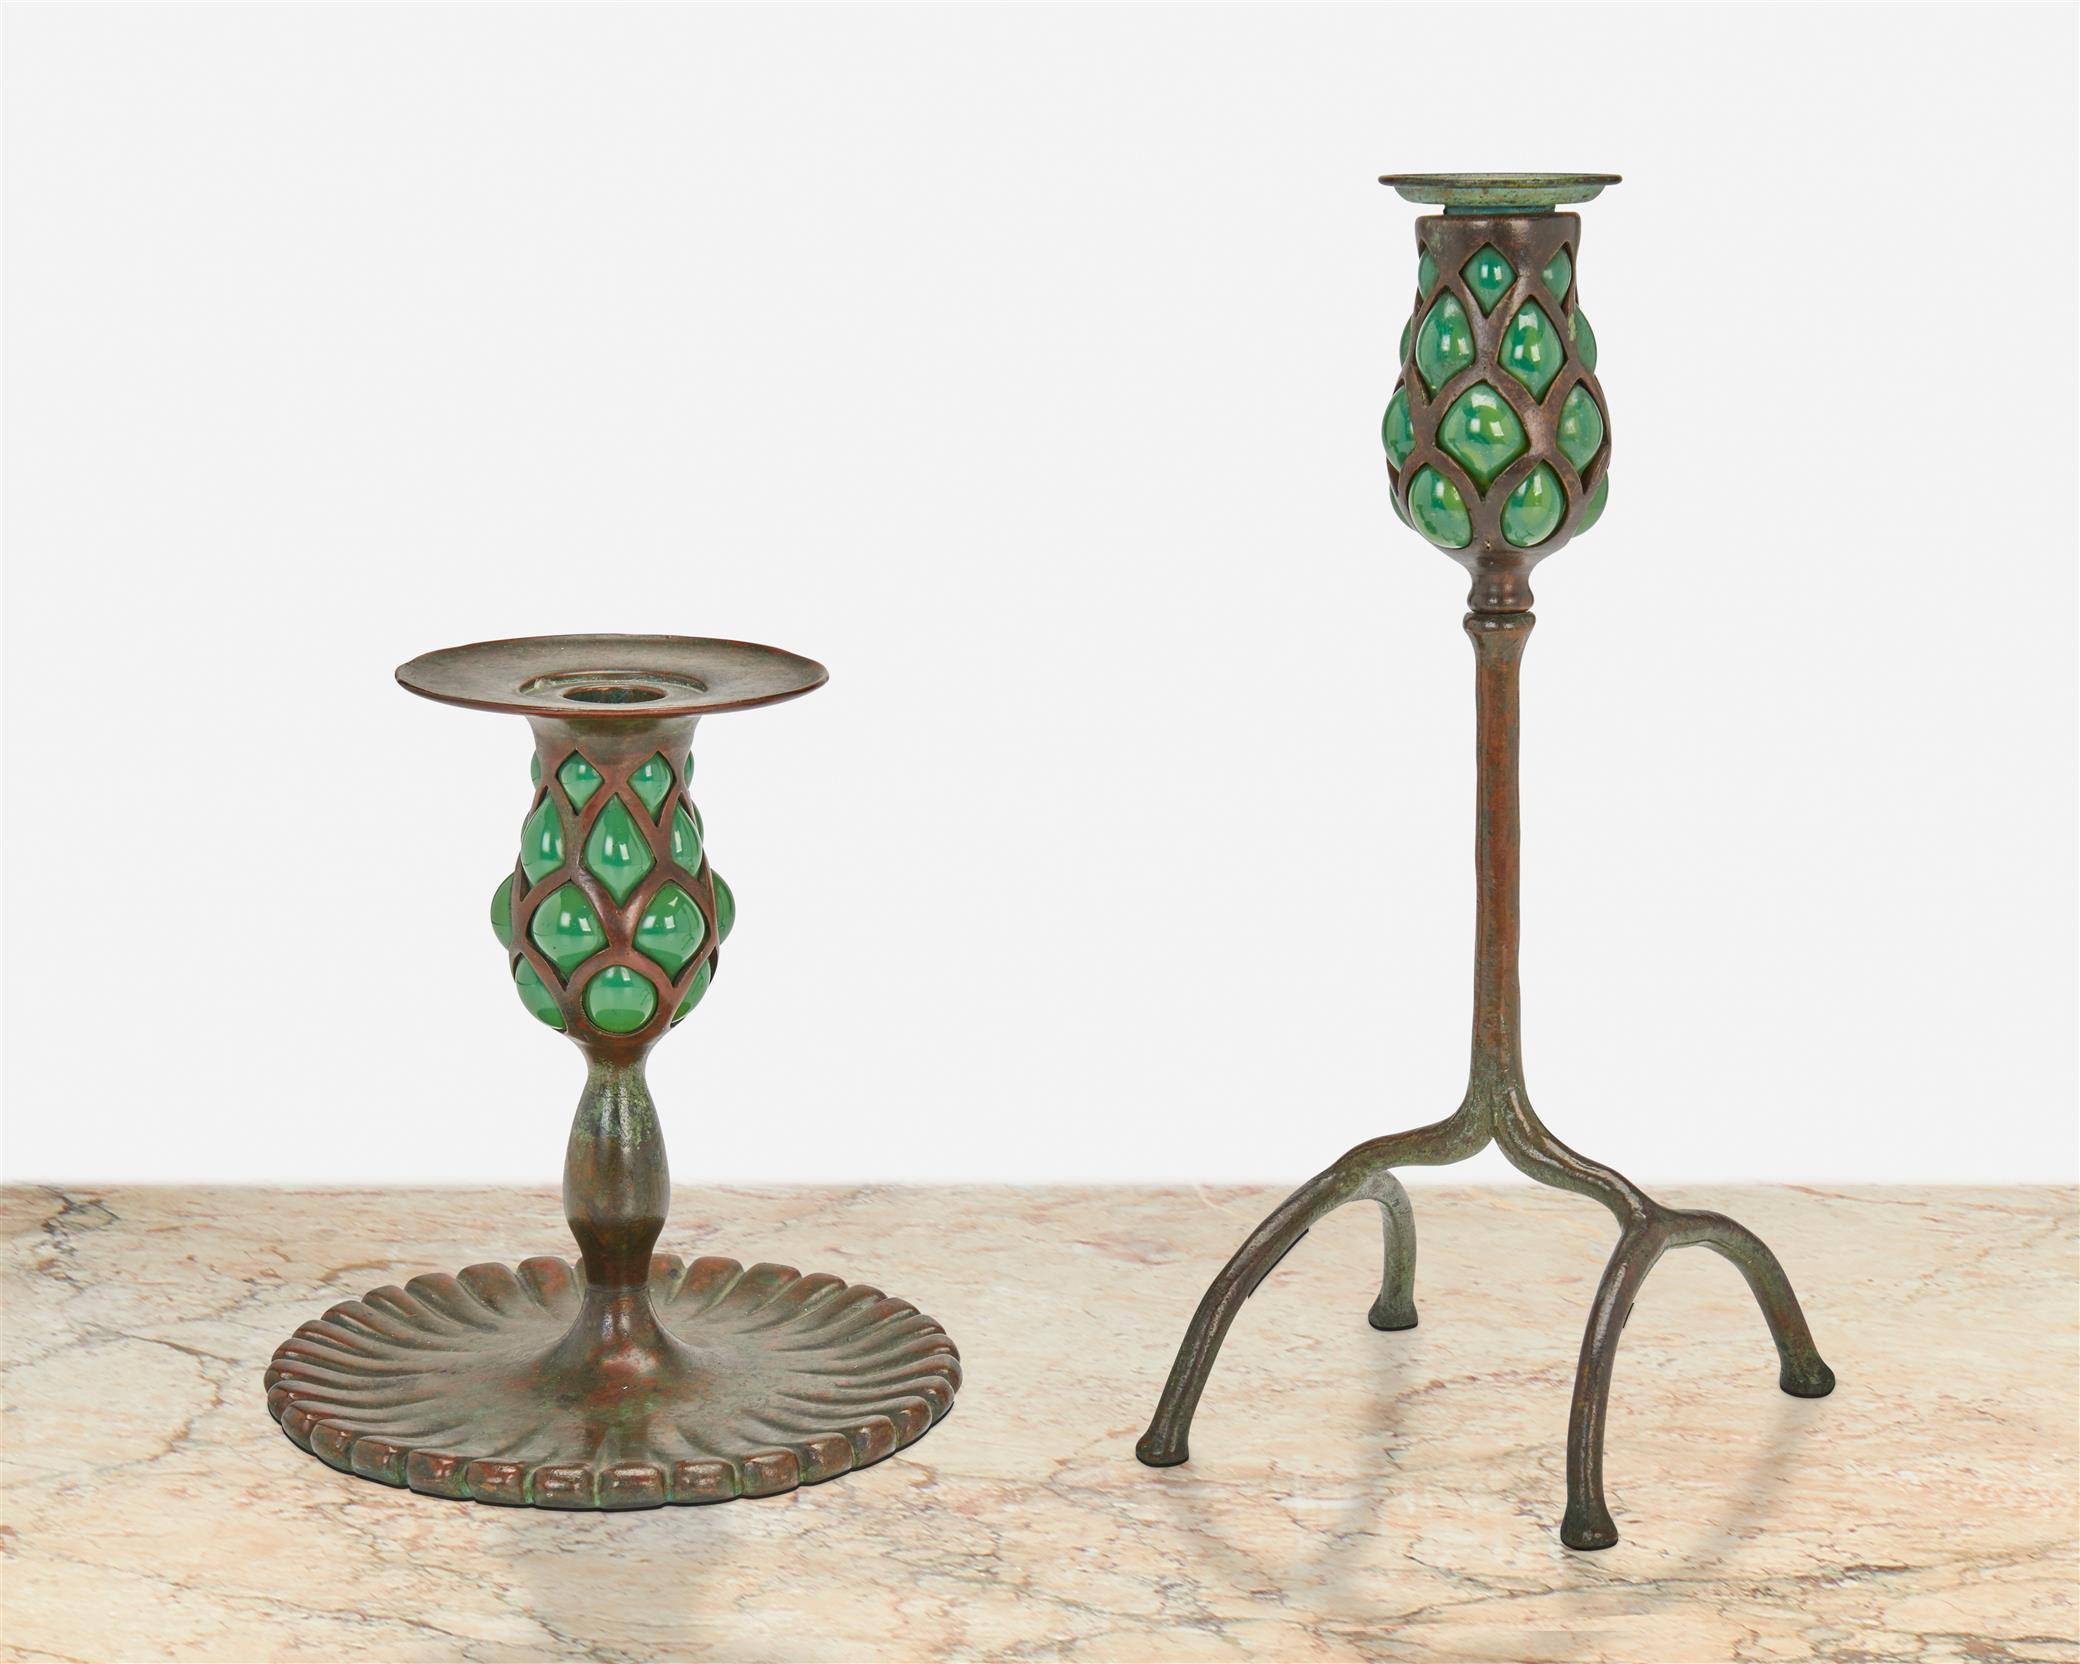 Two Tiffany Studios bronze and blown glass candlesticks